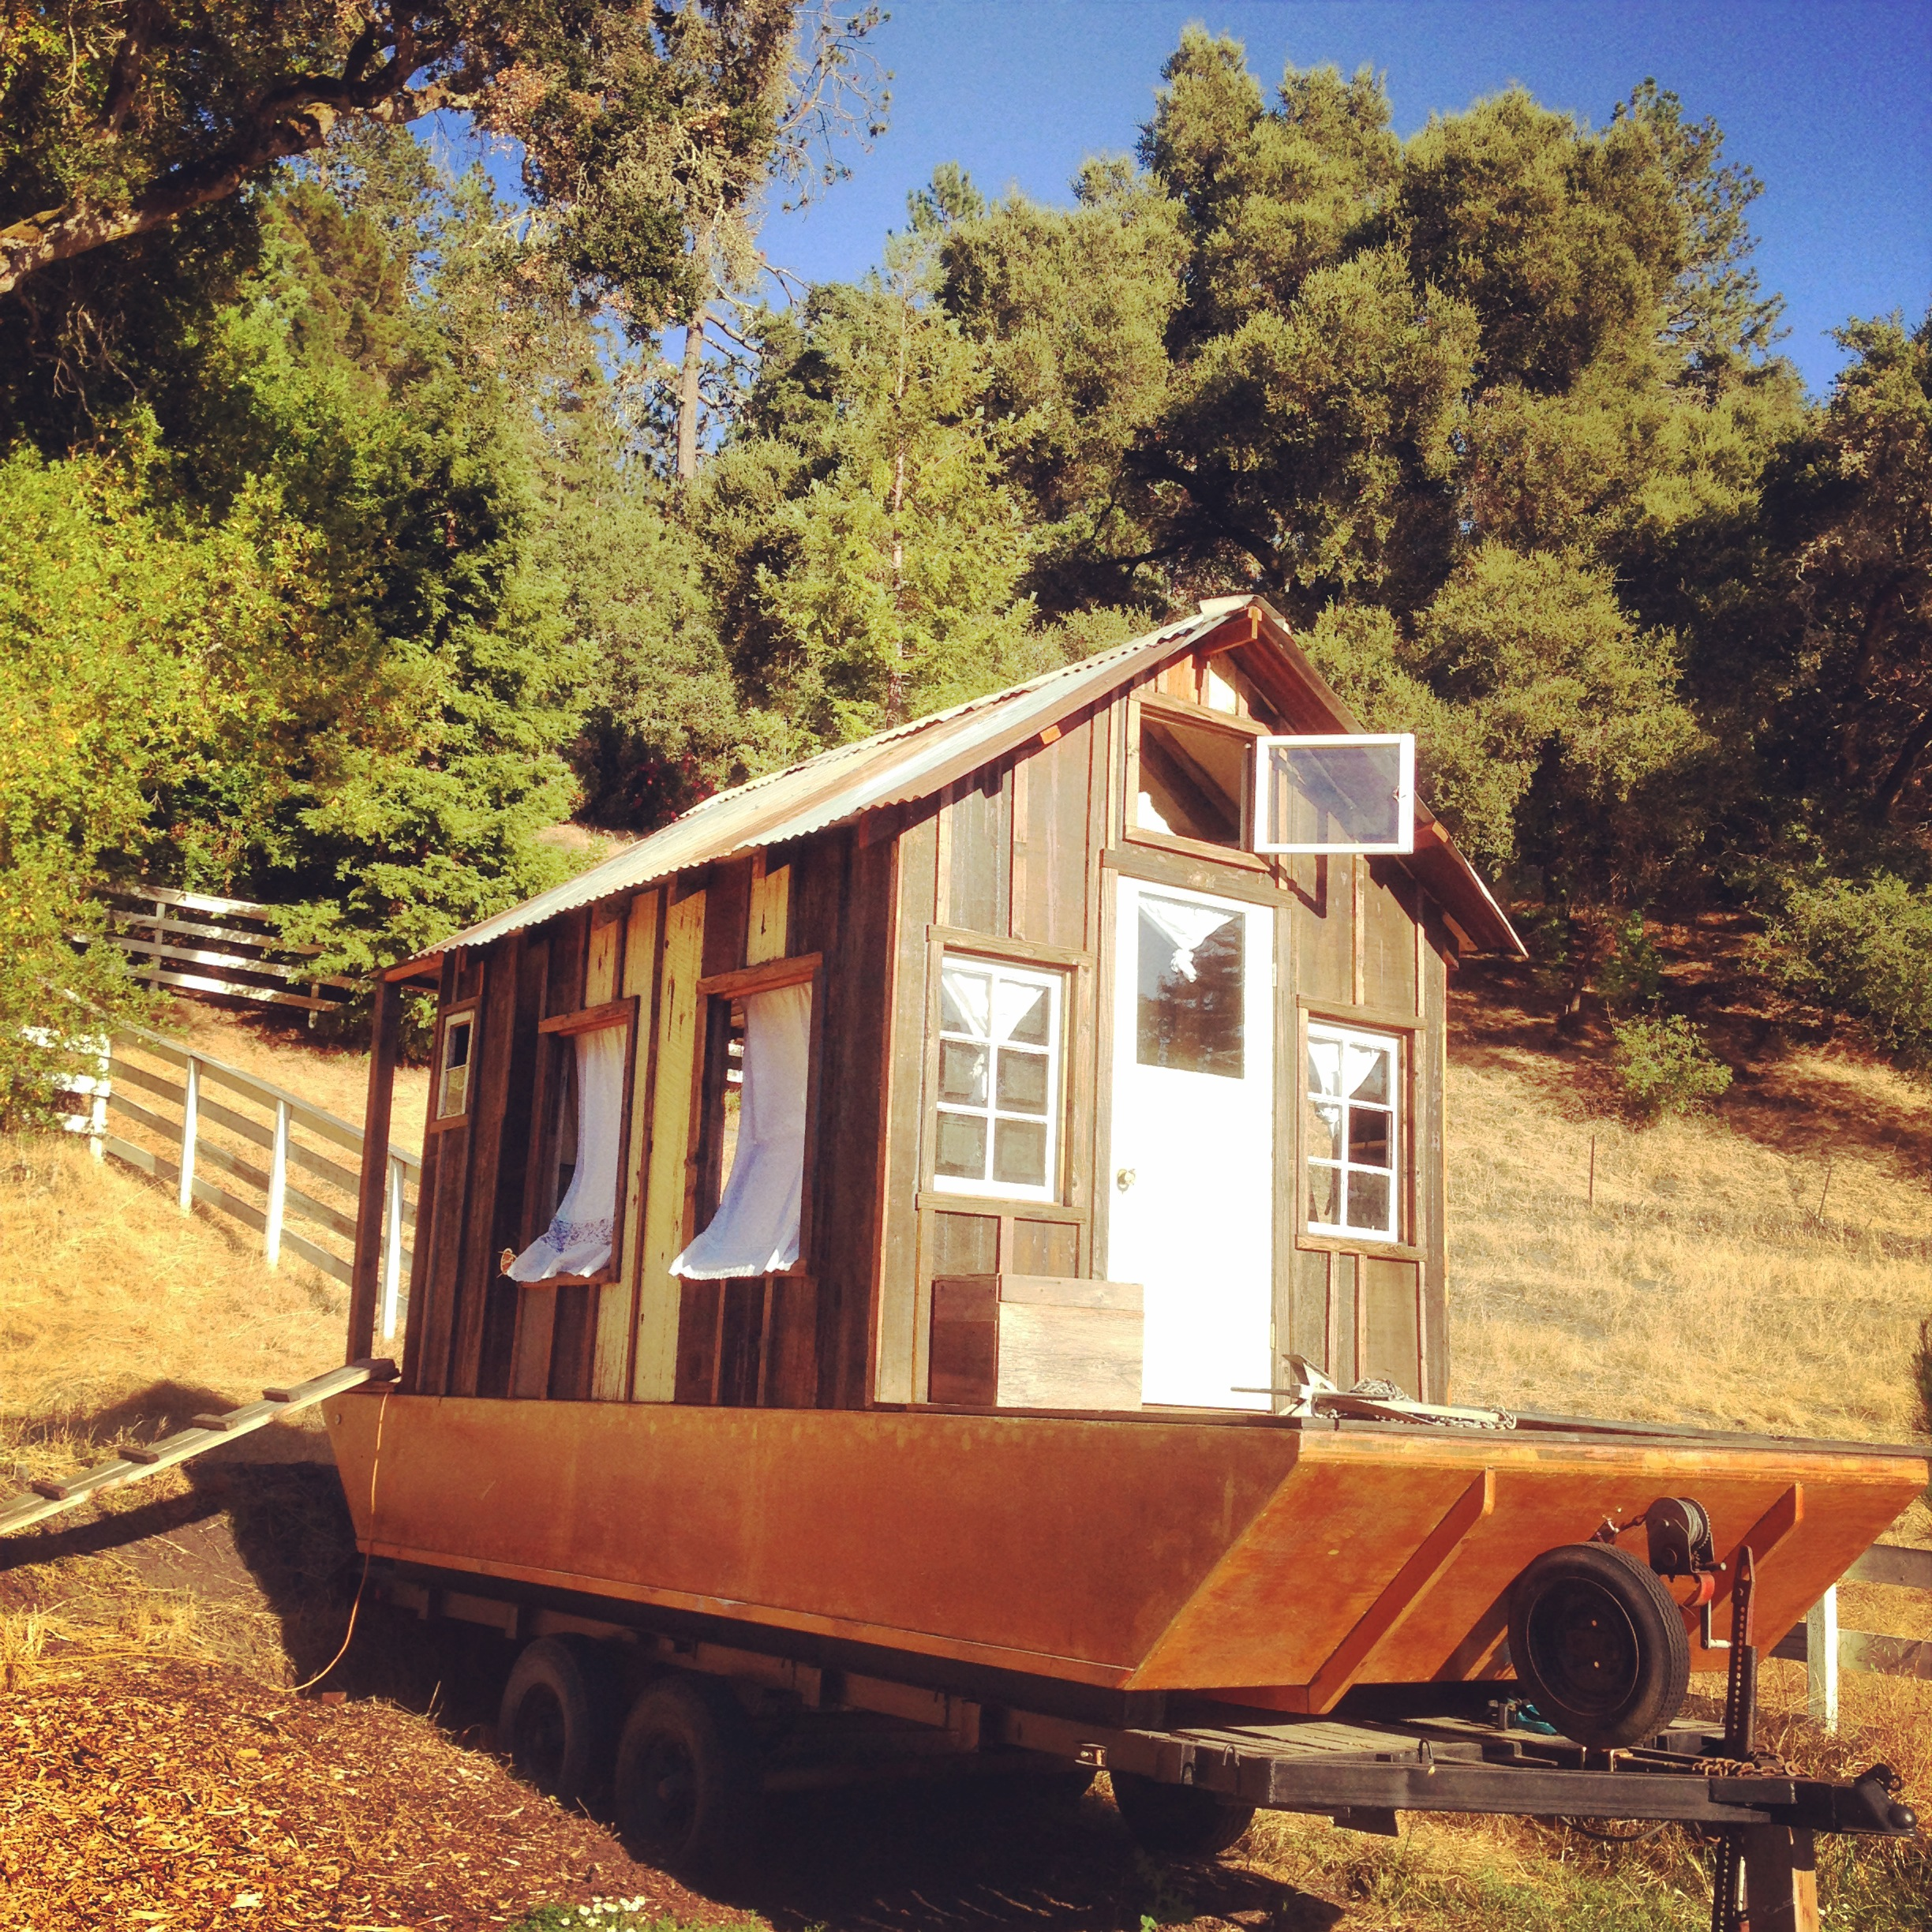 The Shantyboat – A Secret History of American River People